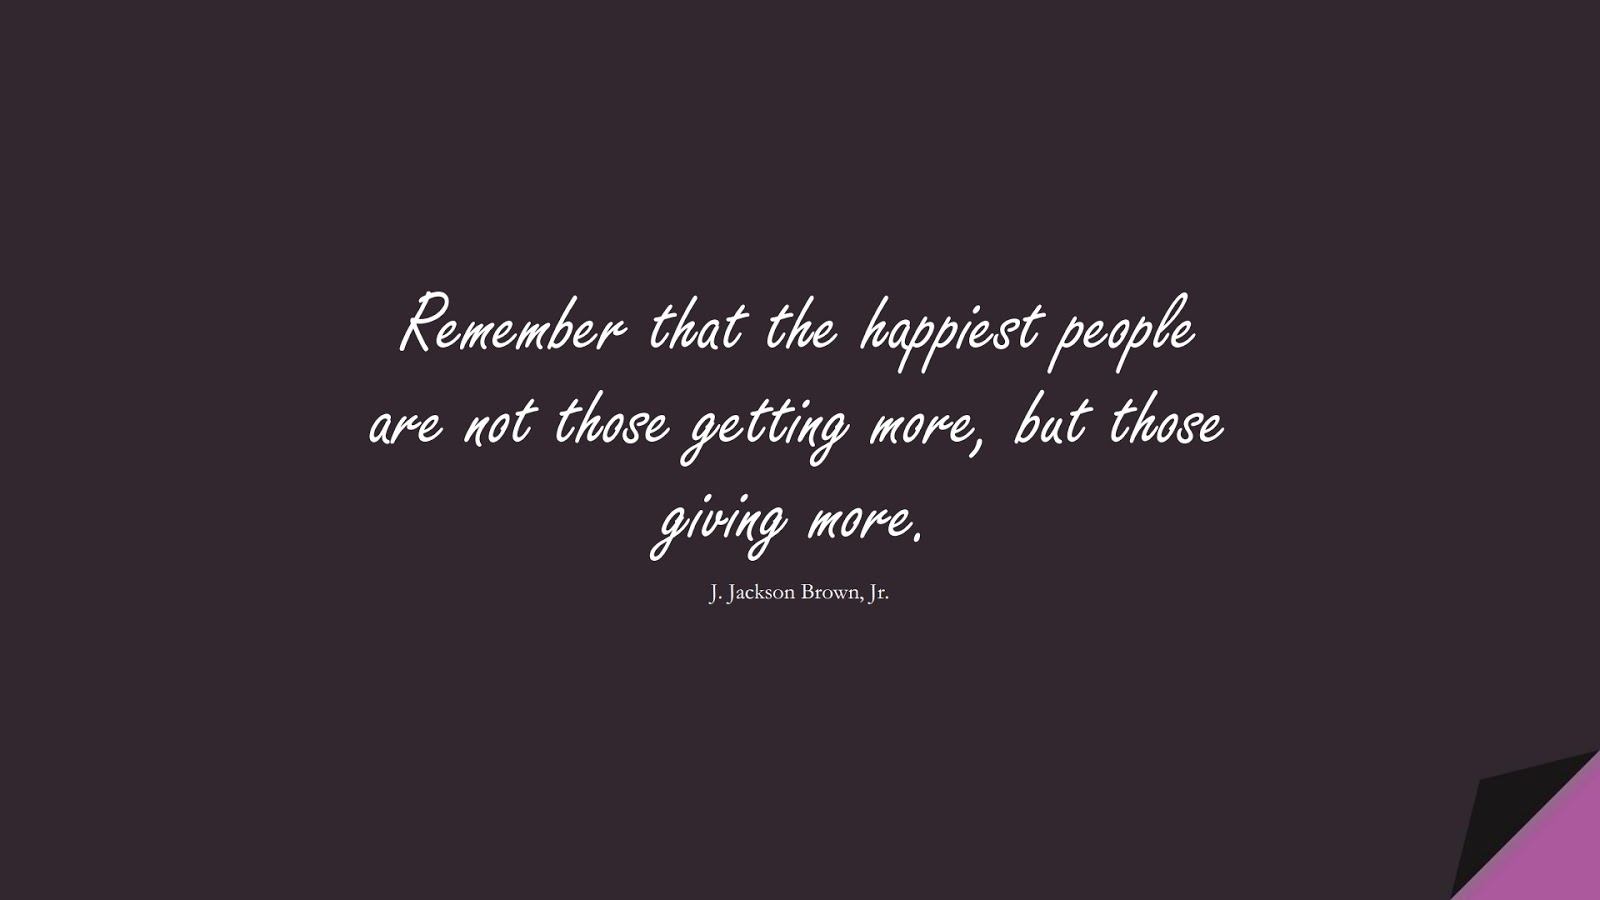 Remember that the happiest people are not those getting more, but those giving more. (J. Jackson Brown, Jr.);  #HappinessQuotes